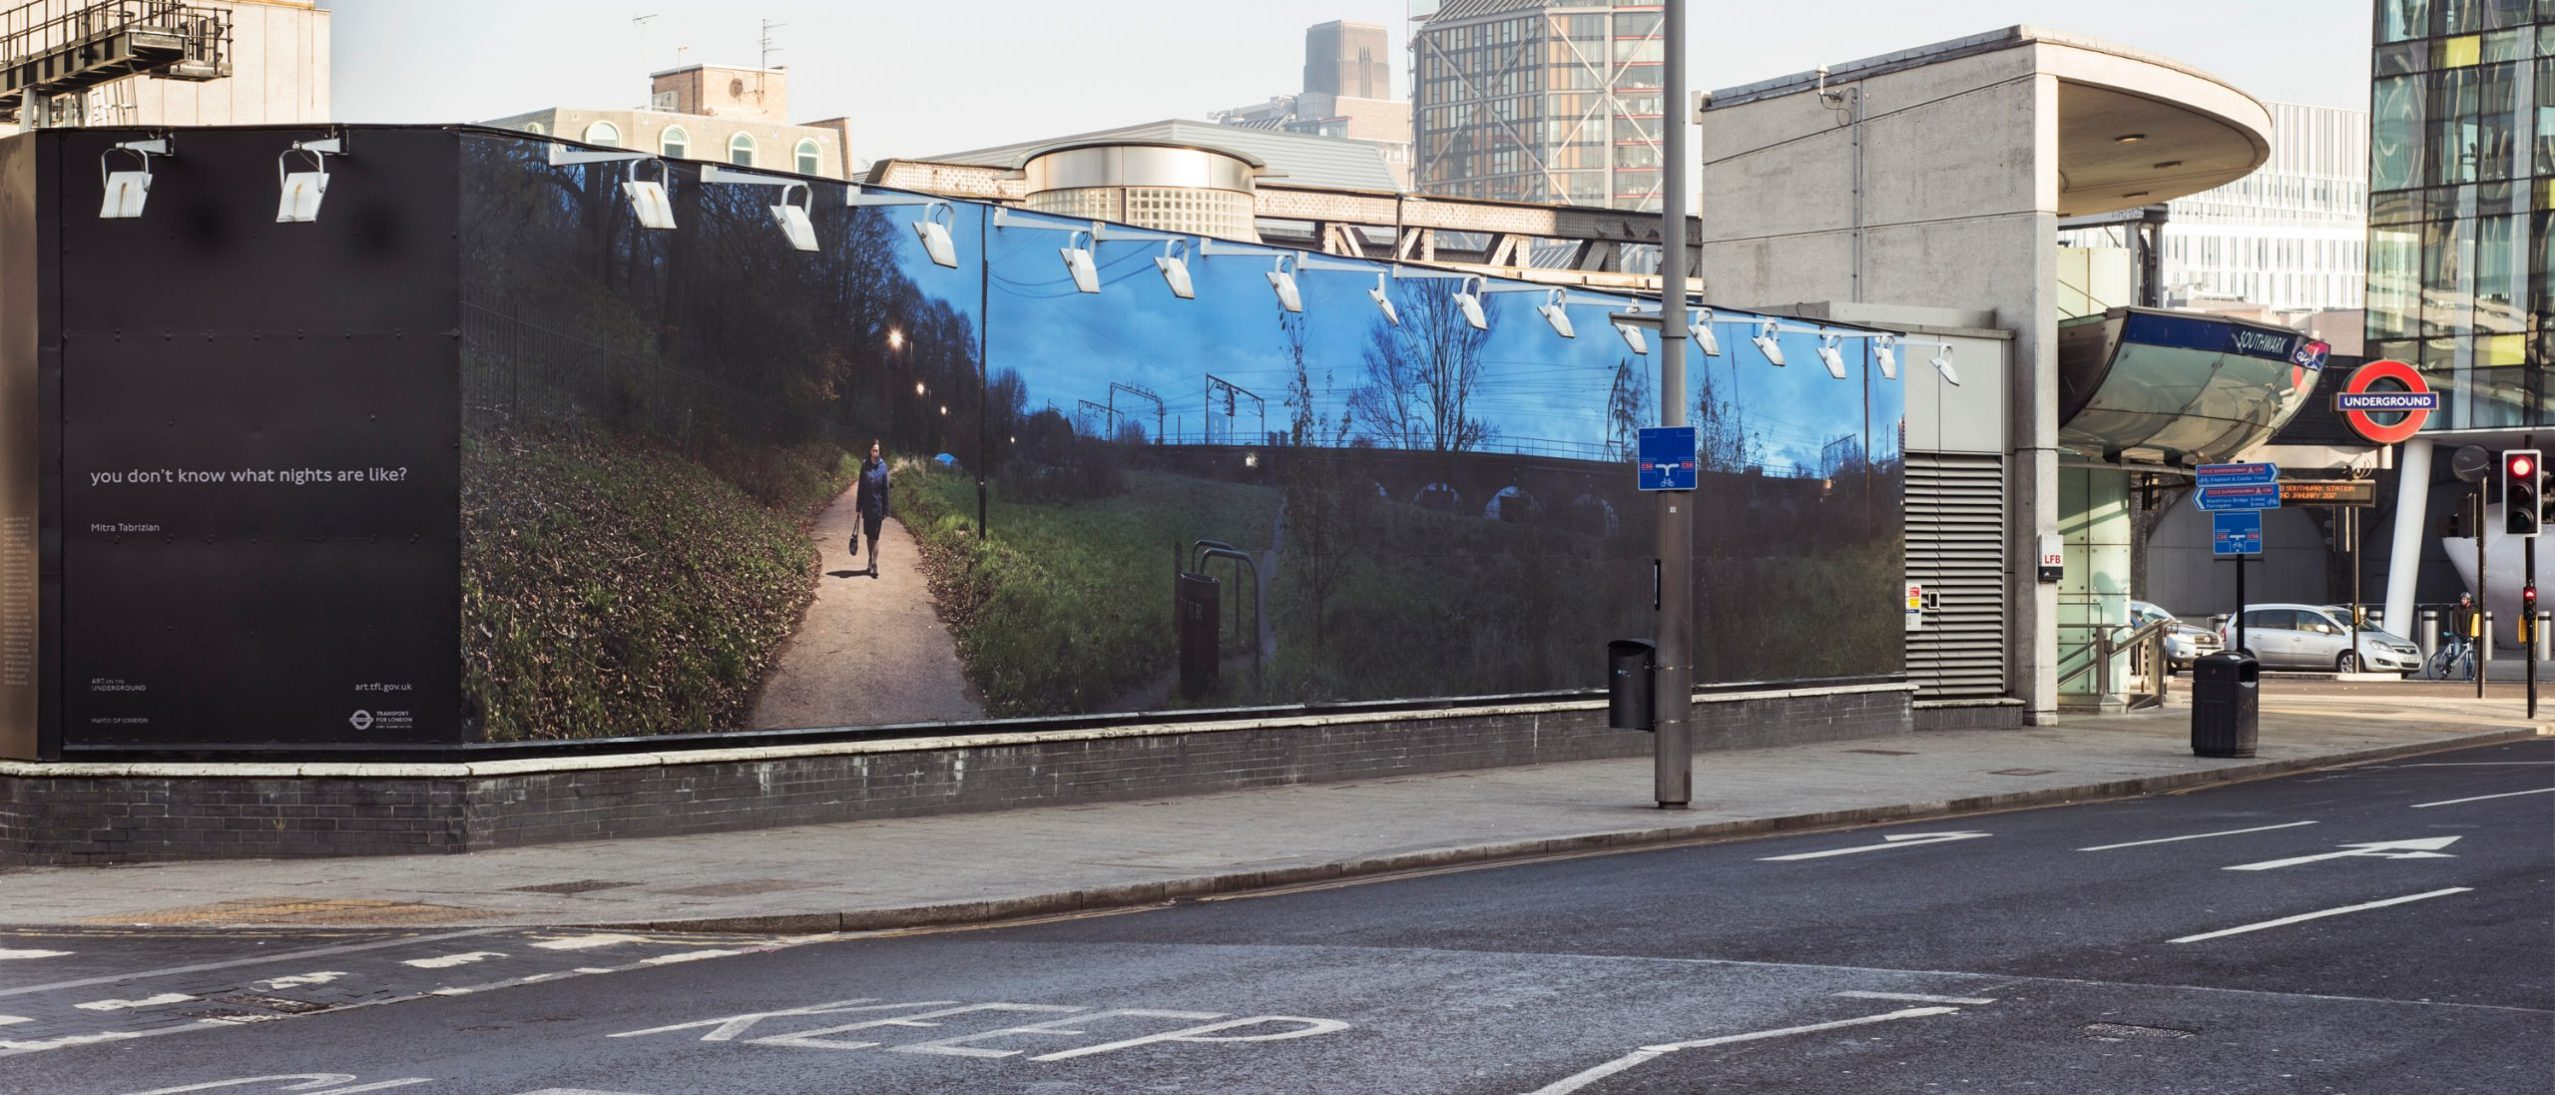 photo of a street, sidewalk and side of a building showing a mural by Mitra Tabrizian, next to a London Underground station. The mural depicts a figure walking home at late evening on a path alongside a wide green area and trees.